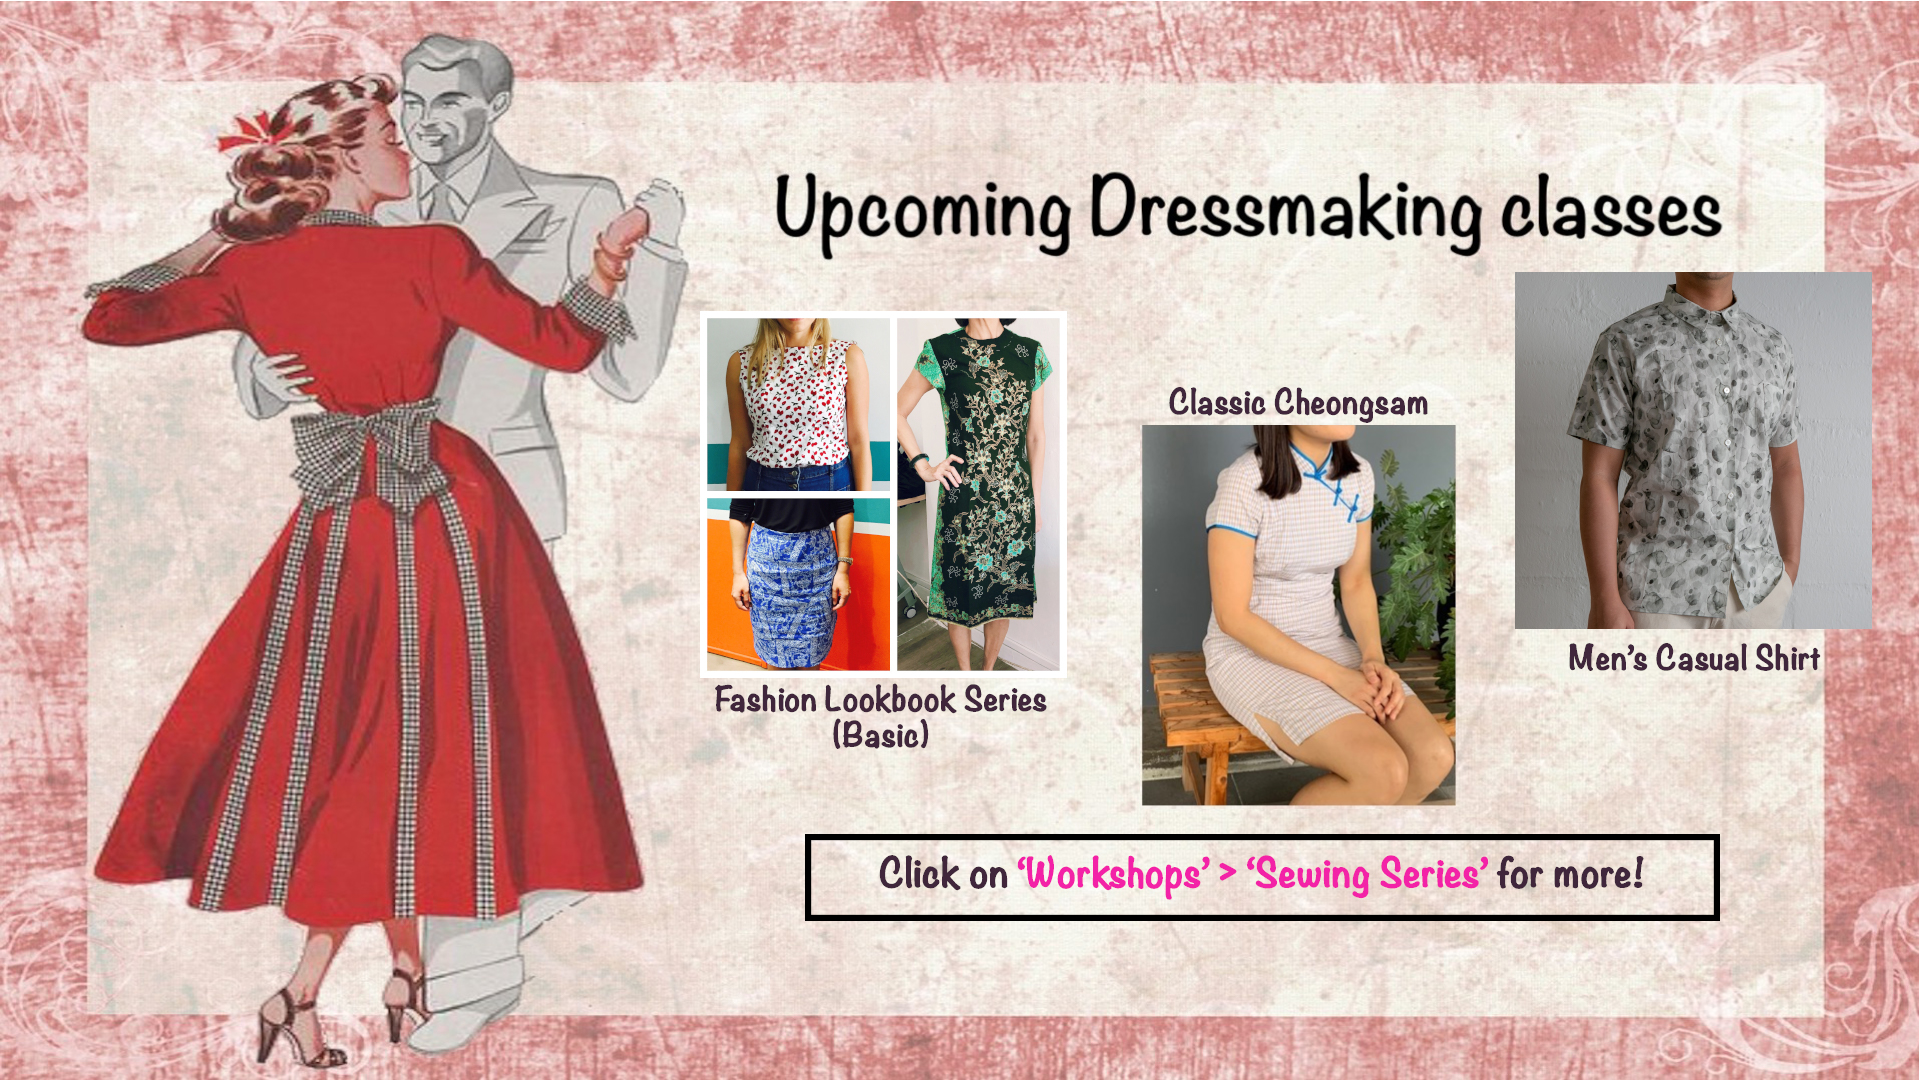 Upcoming Dressmaking classes